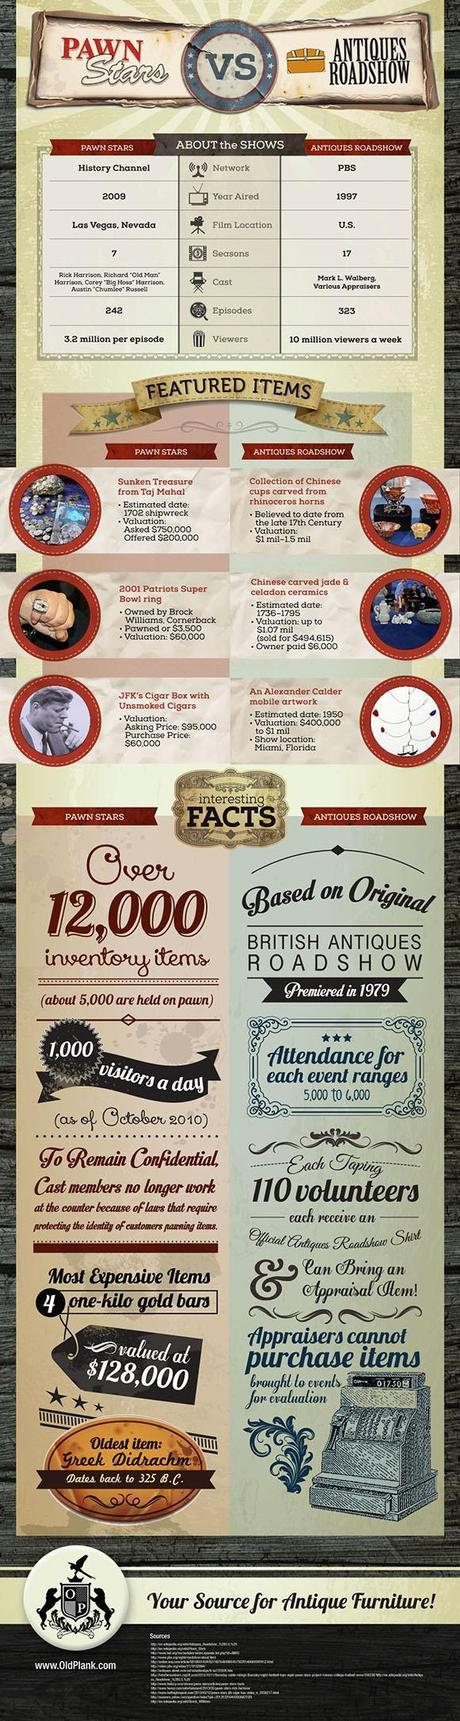 Comparative Overview of Pawn Stars vs Antique Roadshow